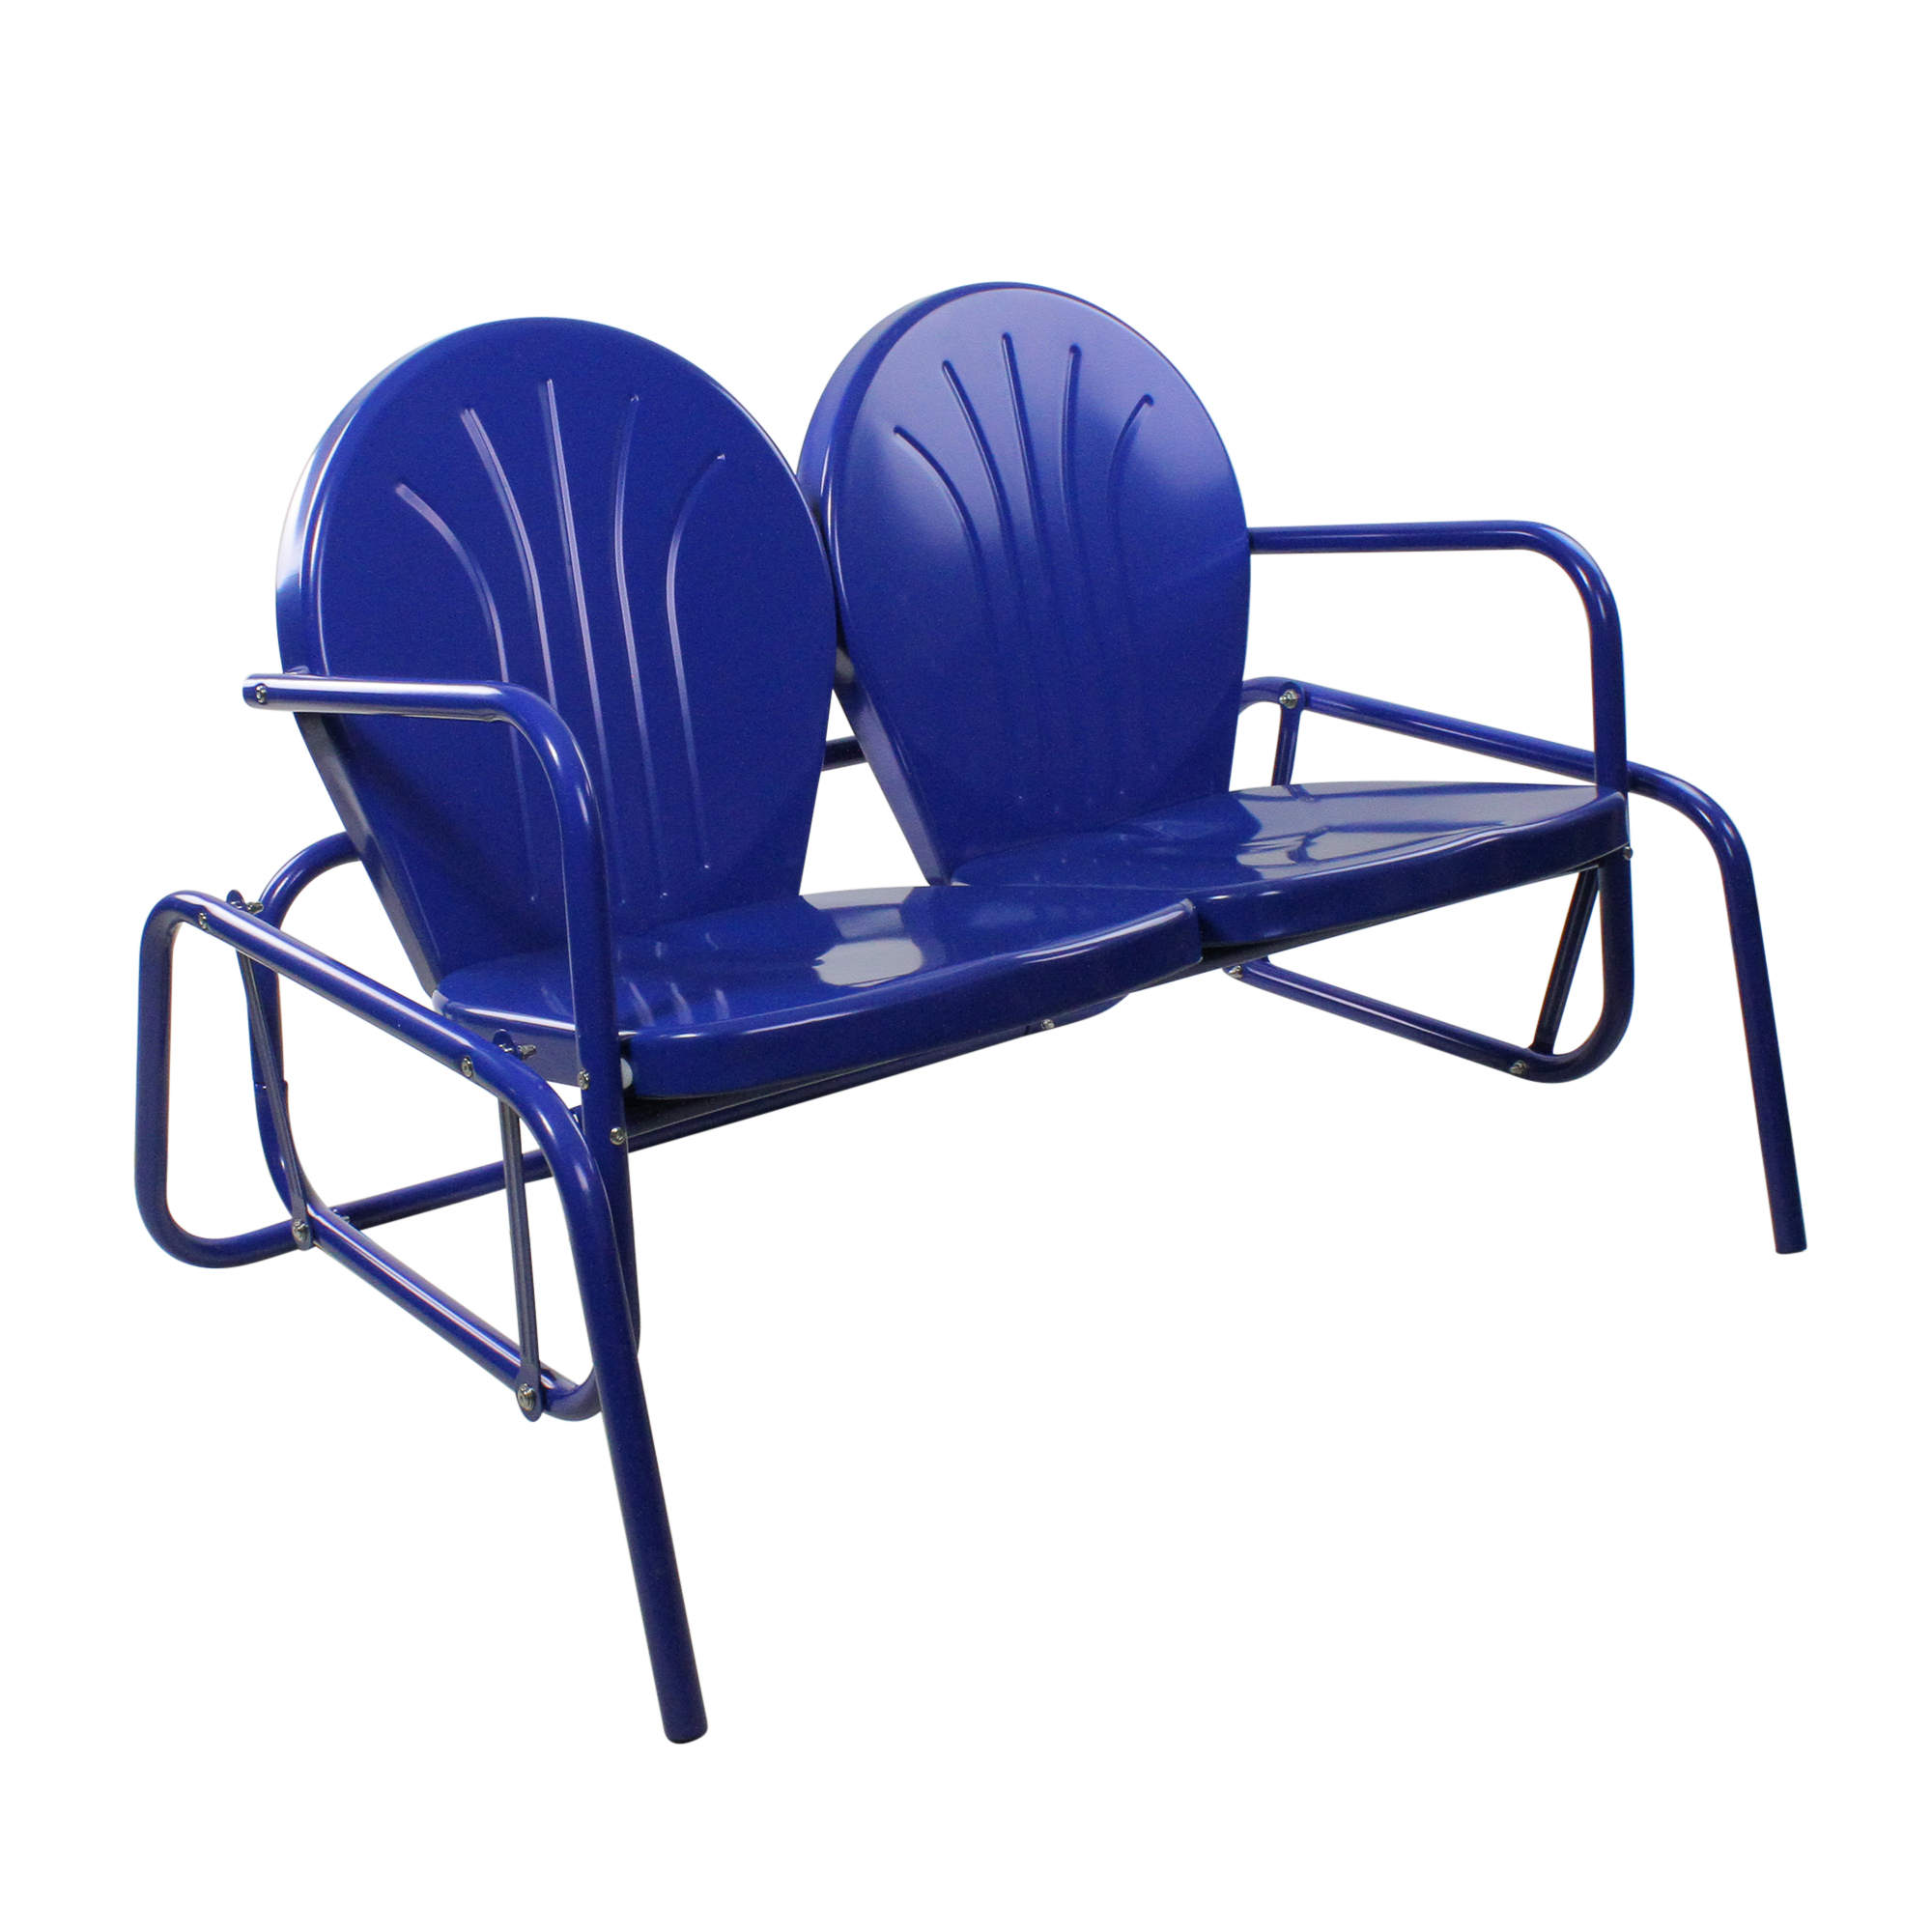 """Details About Lb International 41"""" Electric Blue Retro Metal Tulip Outdoor Double Glider Pertaining To Outdoor Retro Metal Double Glider Benches (View 8 of 25)"""